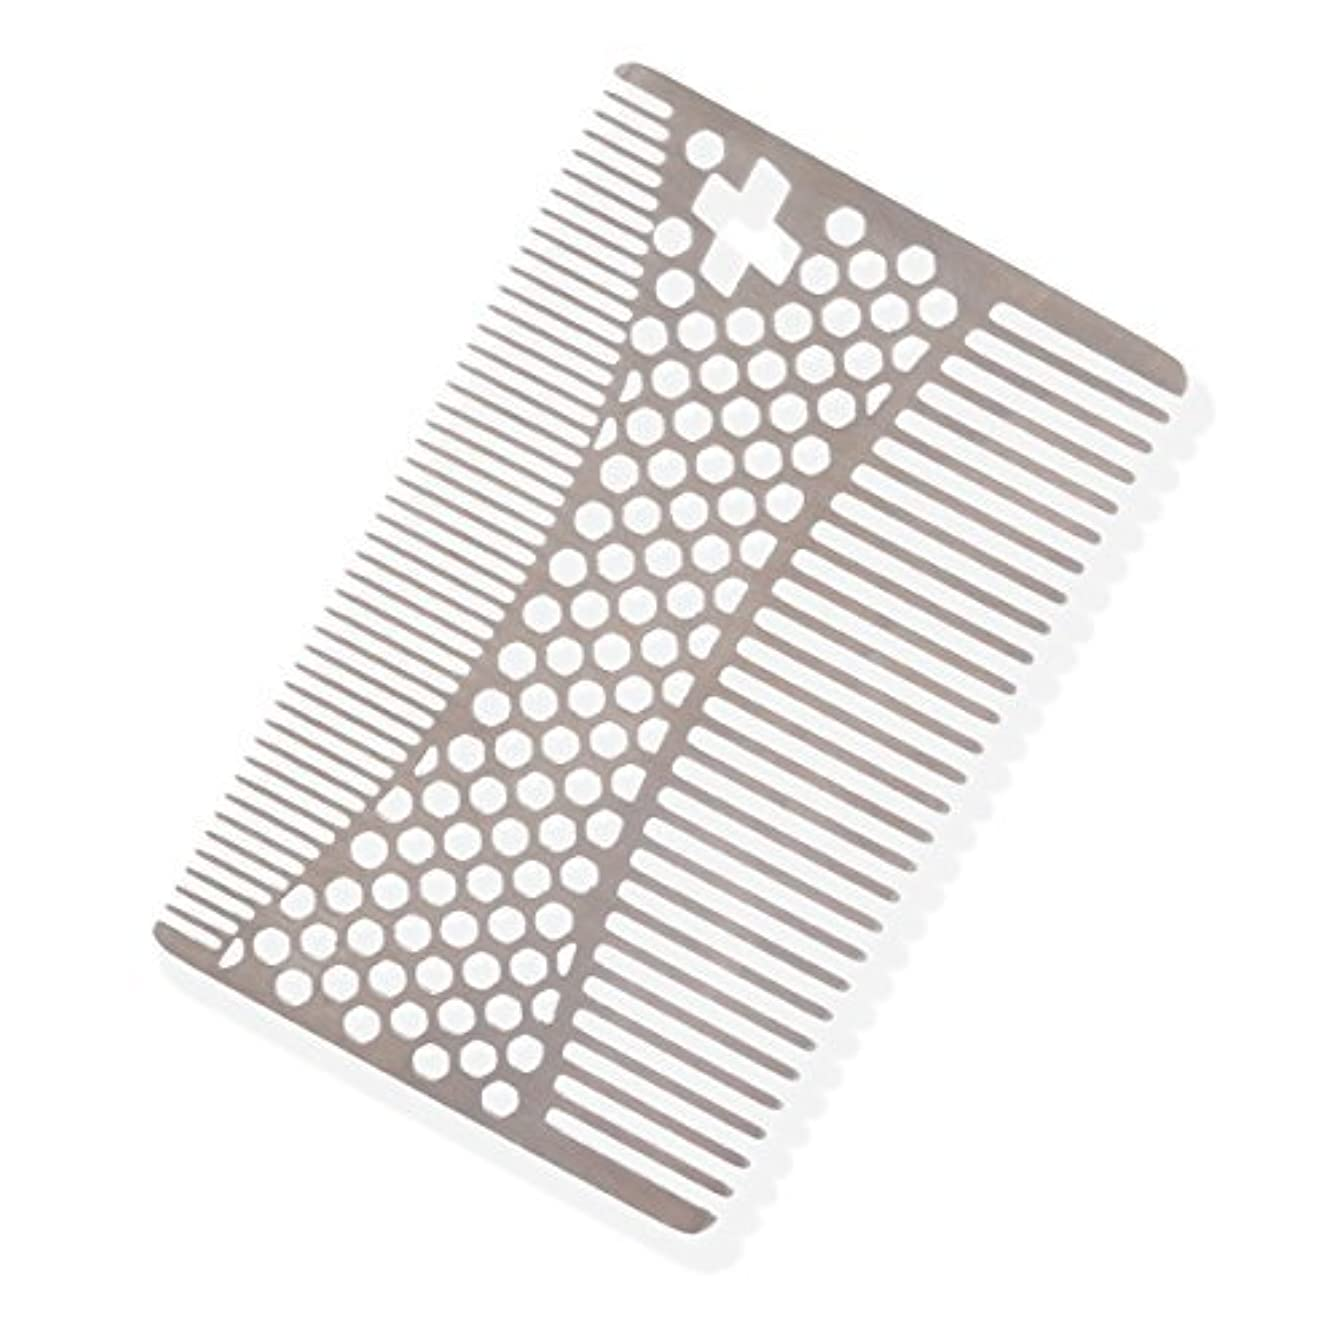 不屈ふくろうありふれたSHARPSWISS Credit Card Pocket Men Hair and Beard Comb Short - Stainless Steel [並行輸入品]